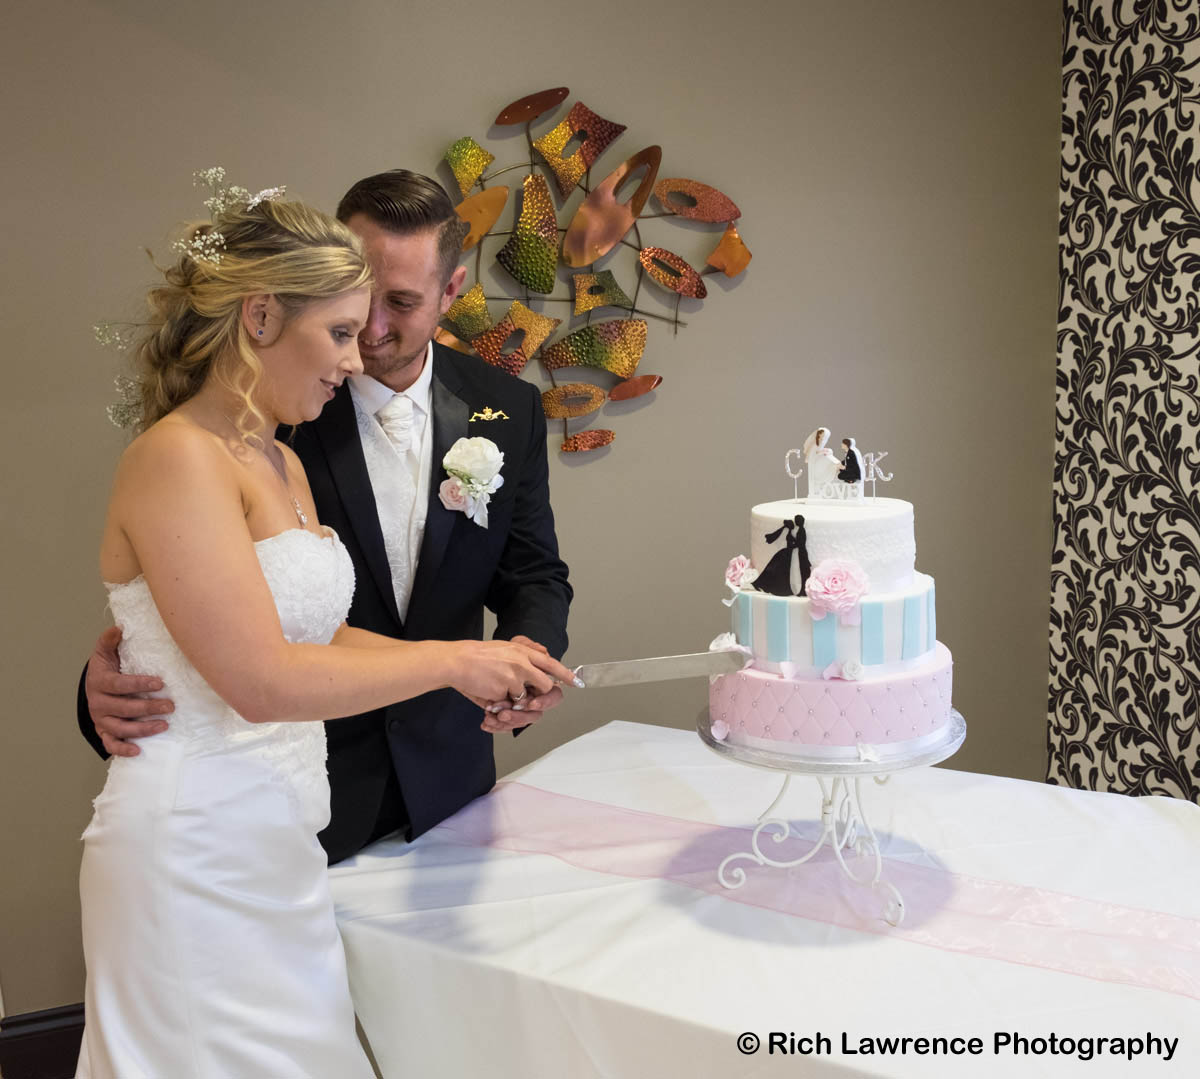 Wedding couple cutting wedding cake